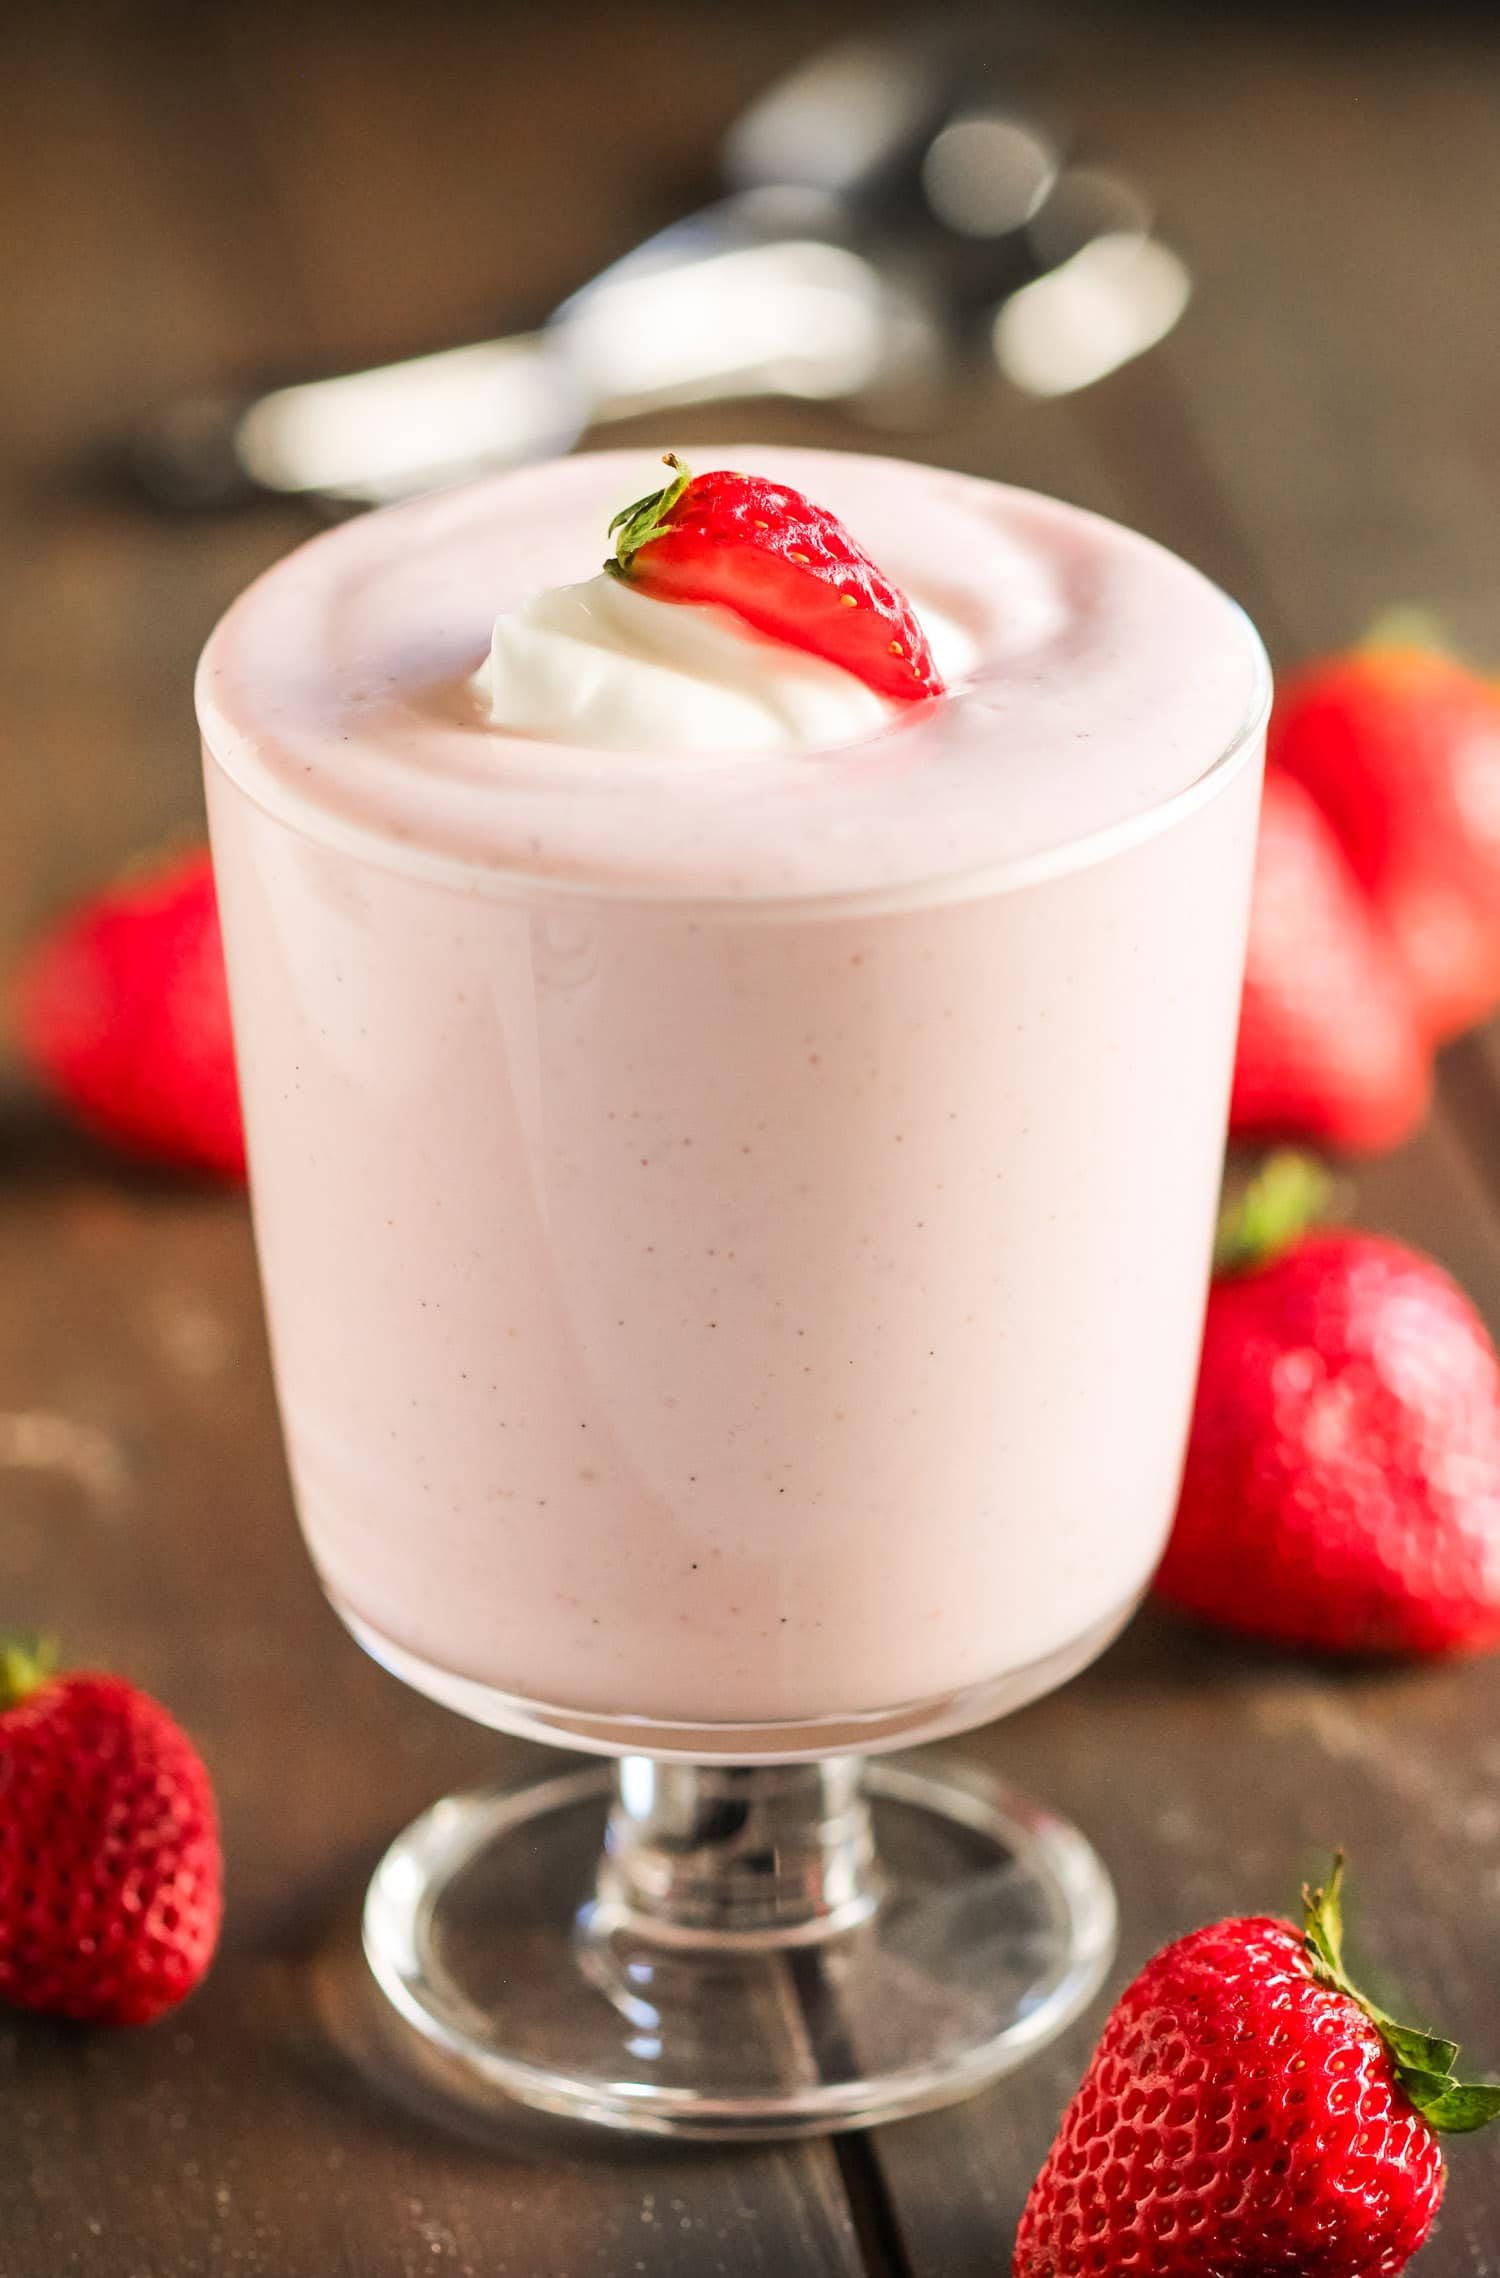 Healthy Strawberry Cheesecake Dip (70 calories)